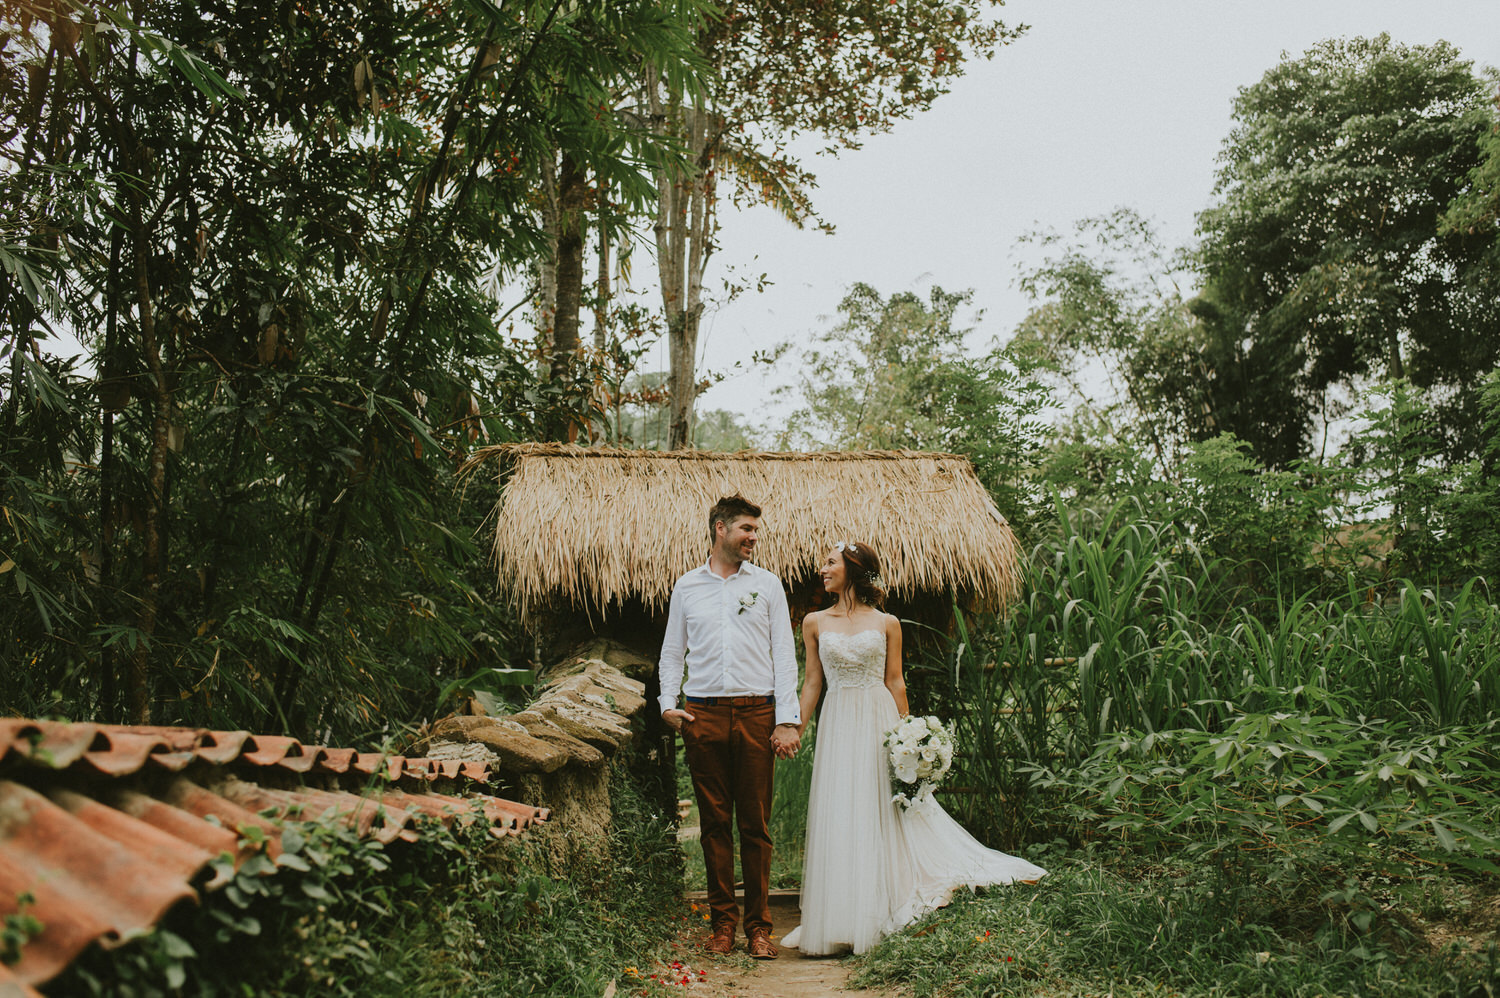 bali-wedding-ubud-wedding-wedding-destination-diktatphotography-kadek-artayasa-elaine-and-glenn-098